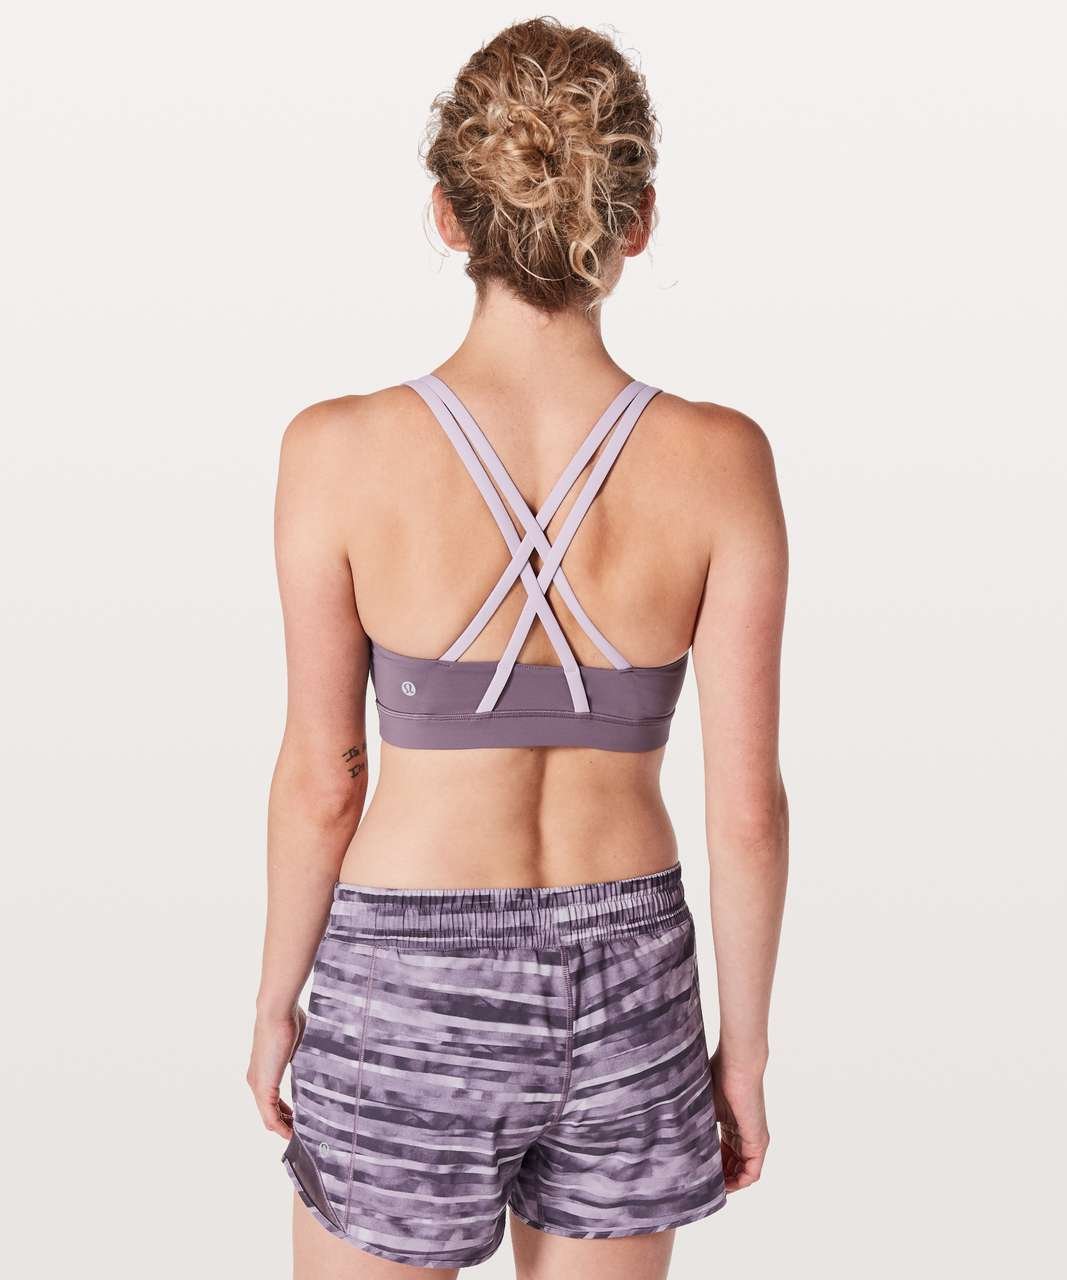 Lululemon Energy Bra - Smoked Mulberry / Violetta